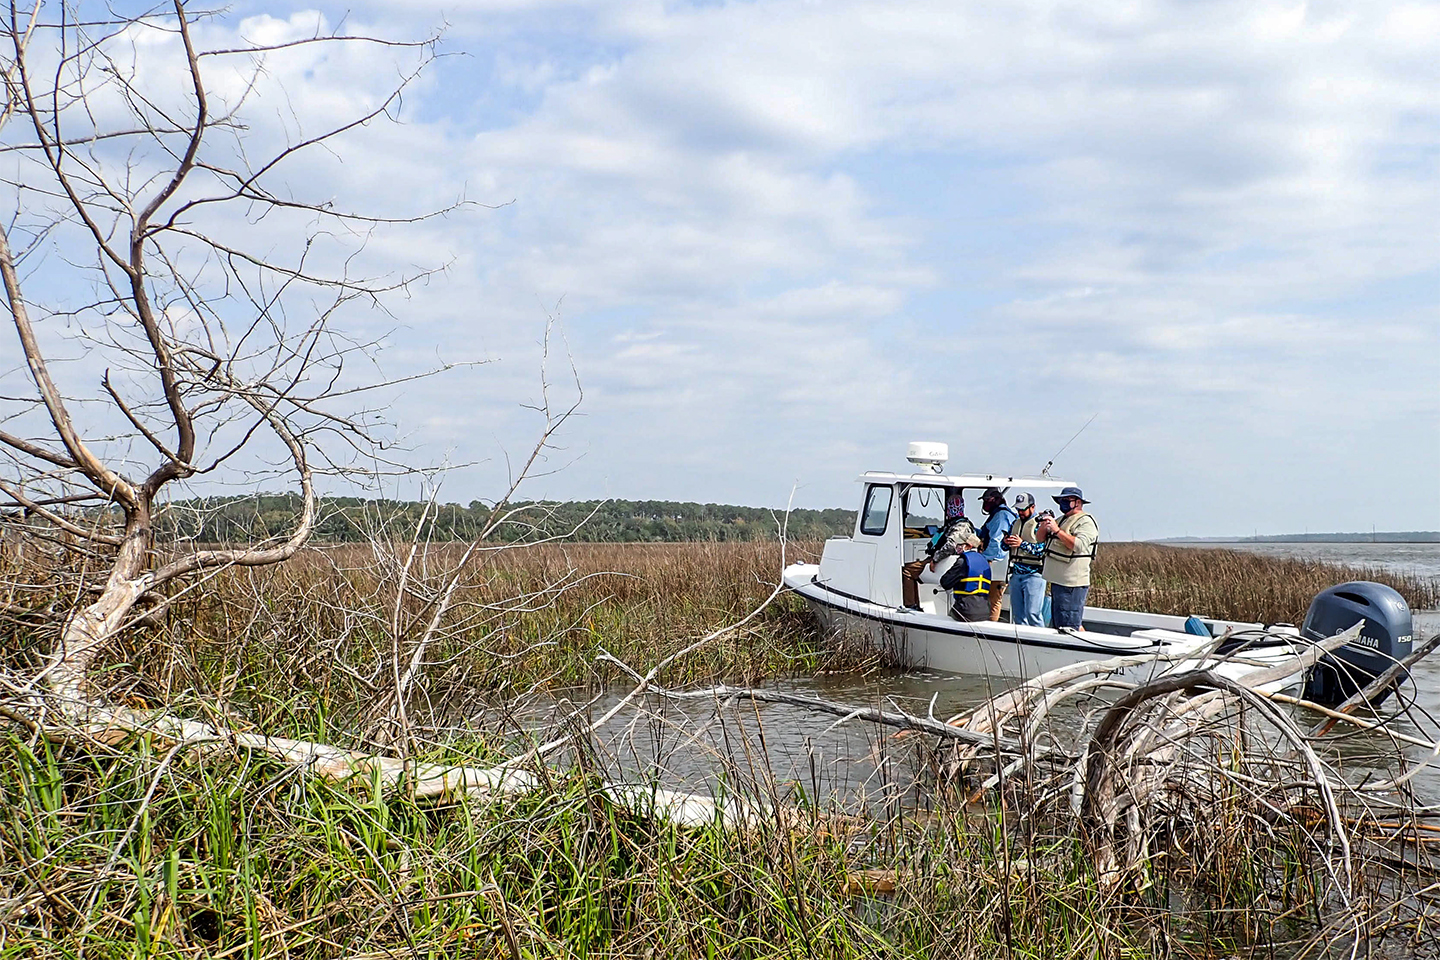 Eco tourists on a boat in the marsh